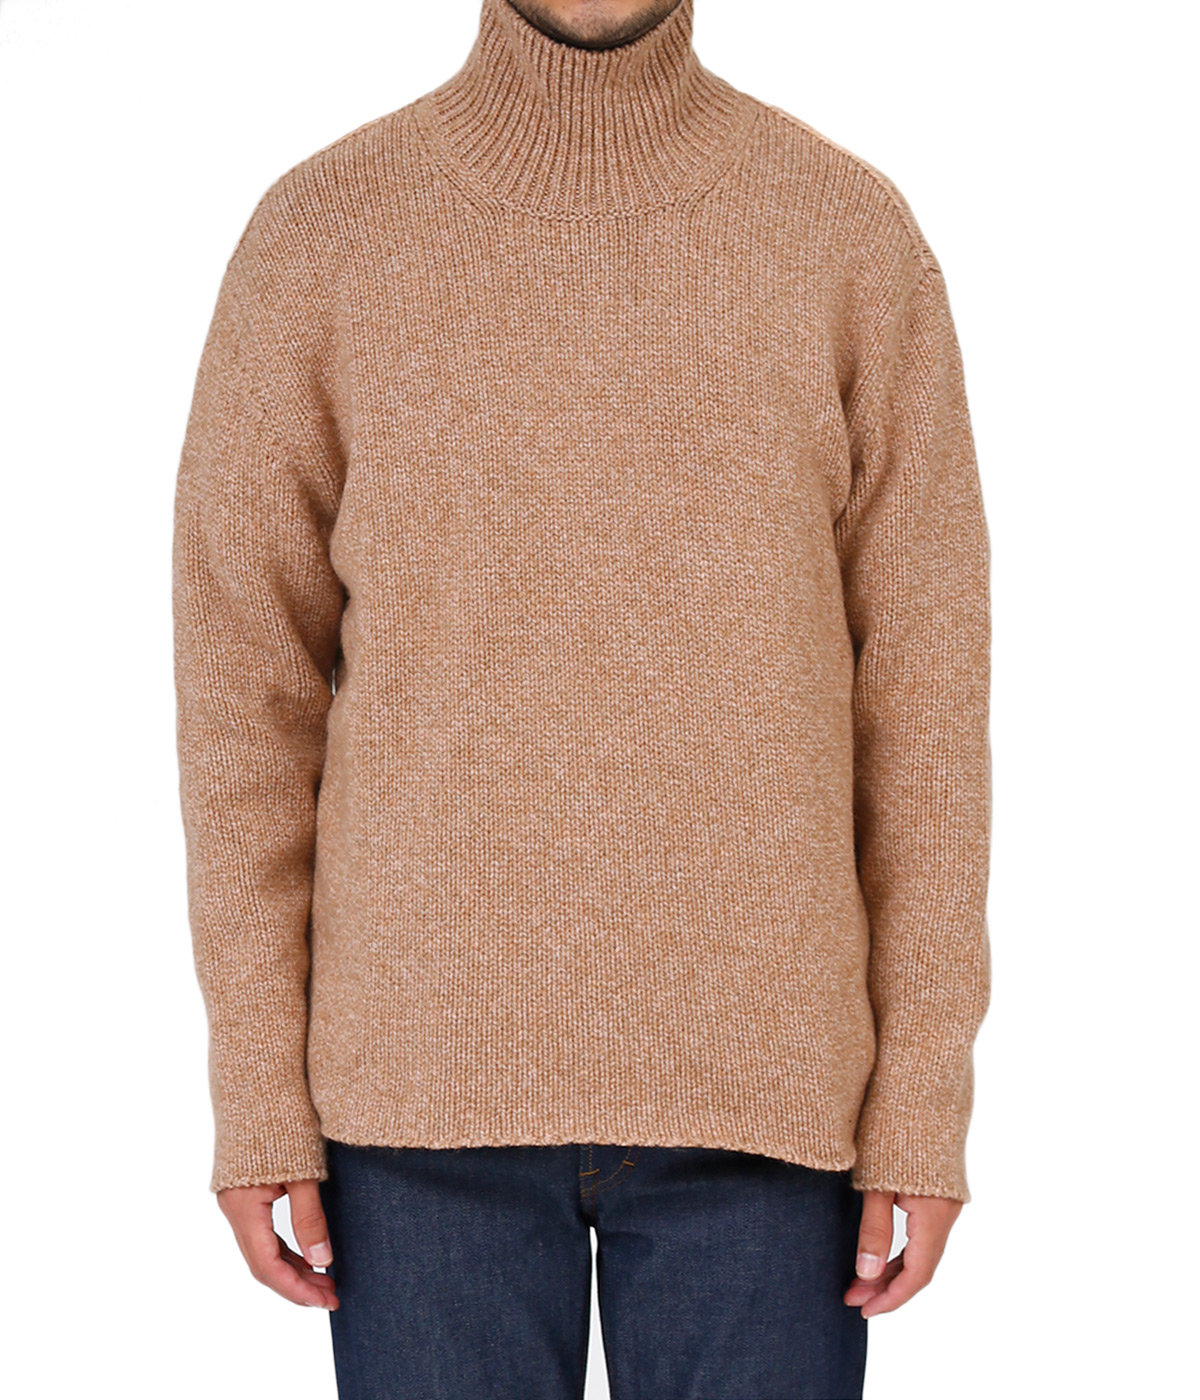 CAMEL WOOL MIX KNIT TURTLE NECK P/O